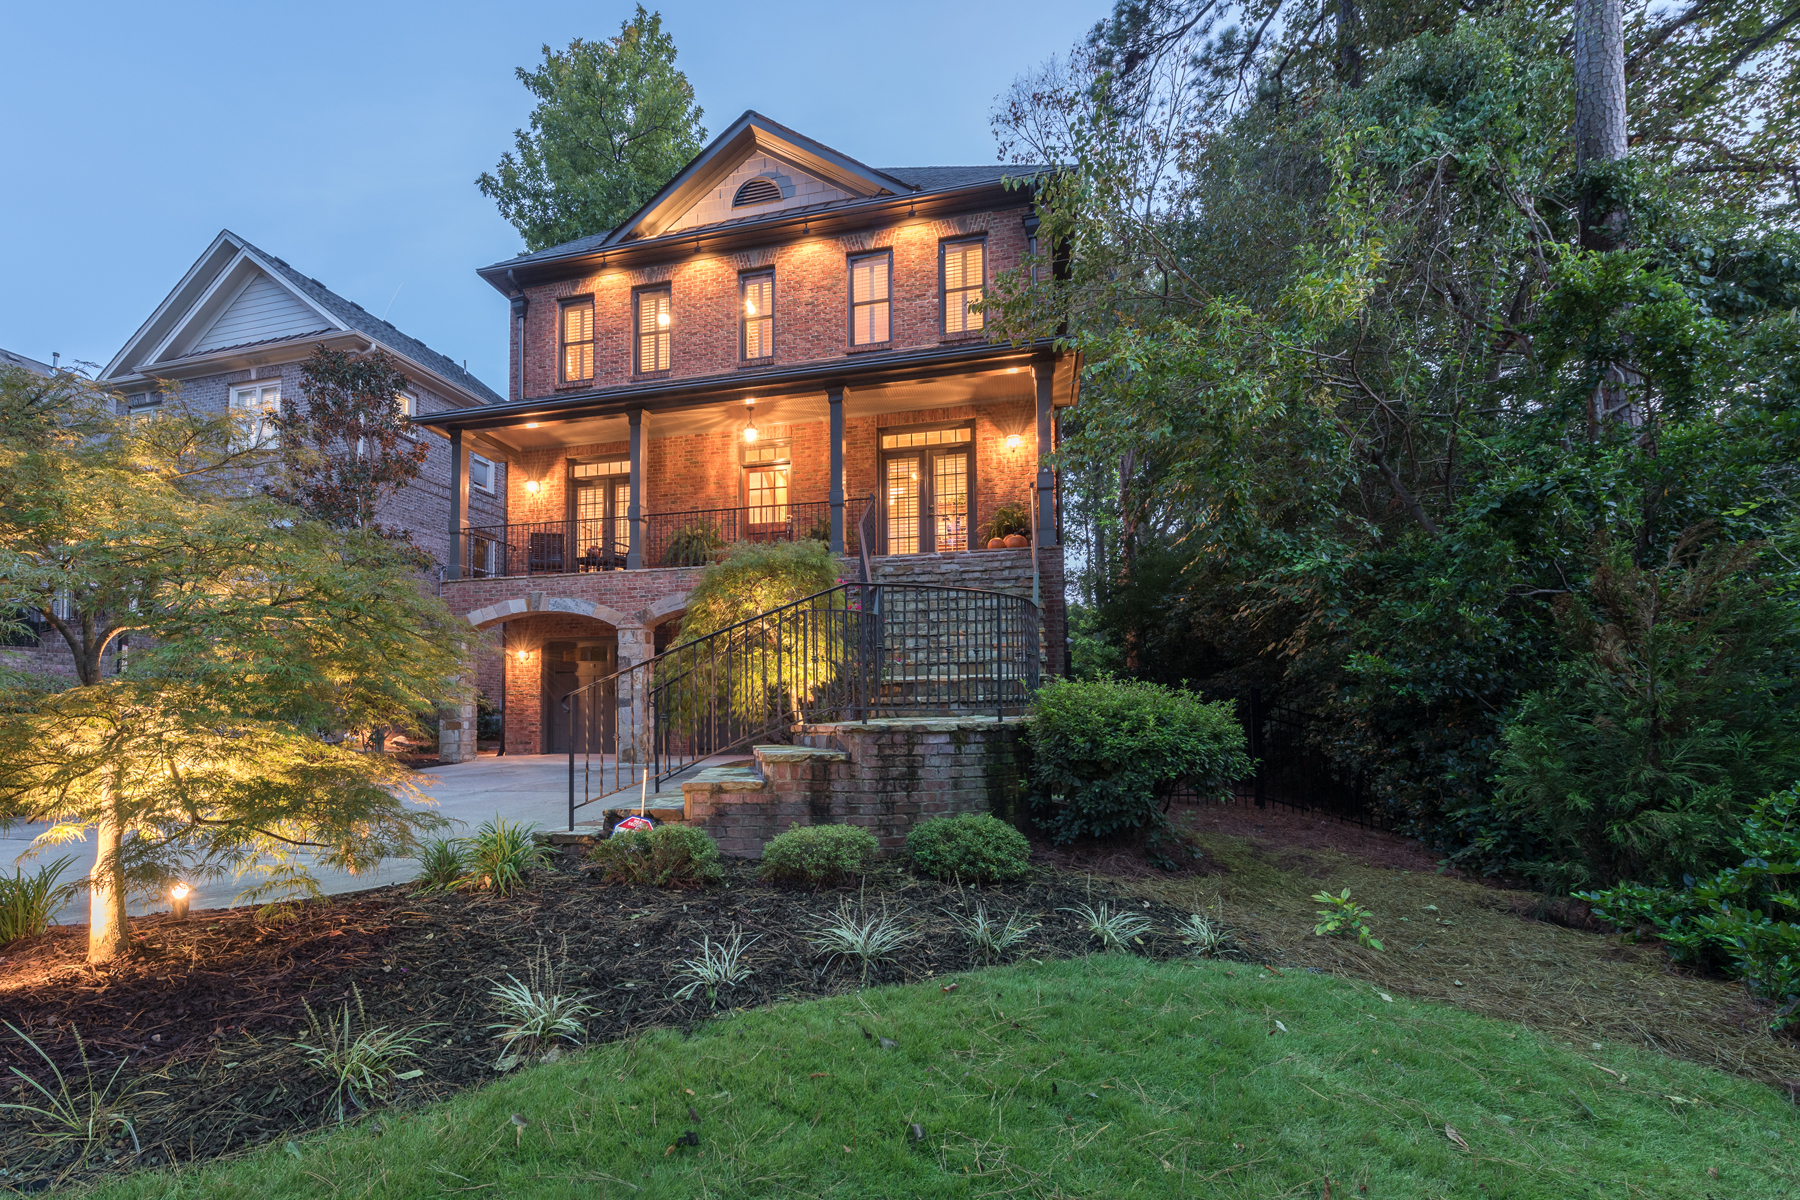 Single Family Home for Sale at Retreat To This Wonderful Home In Brookhaven 1013 Pine Grove Avenue NE Atlanta, Georgia, 30319 United States